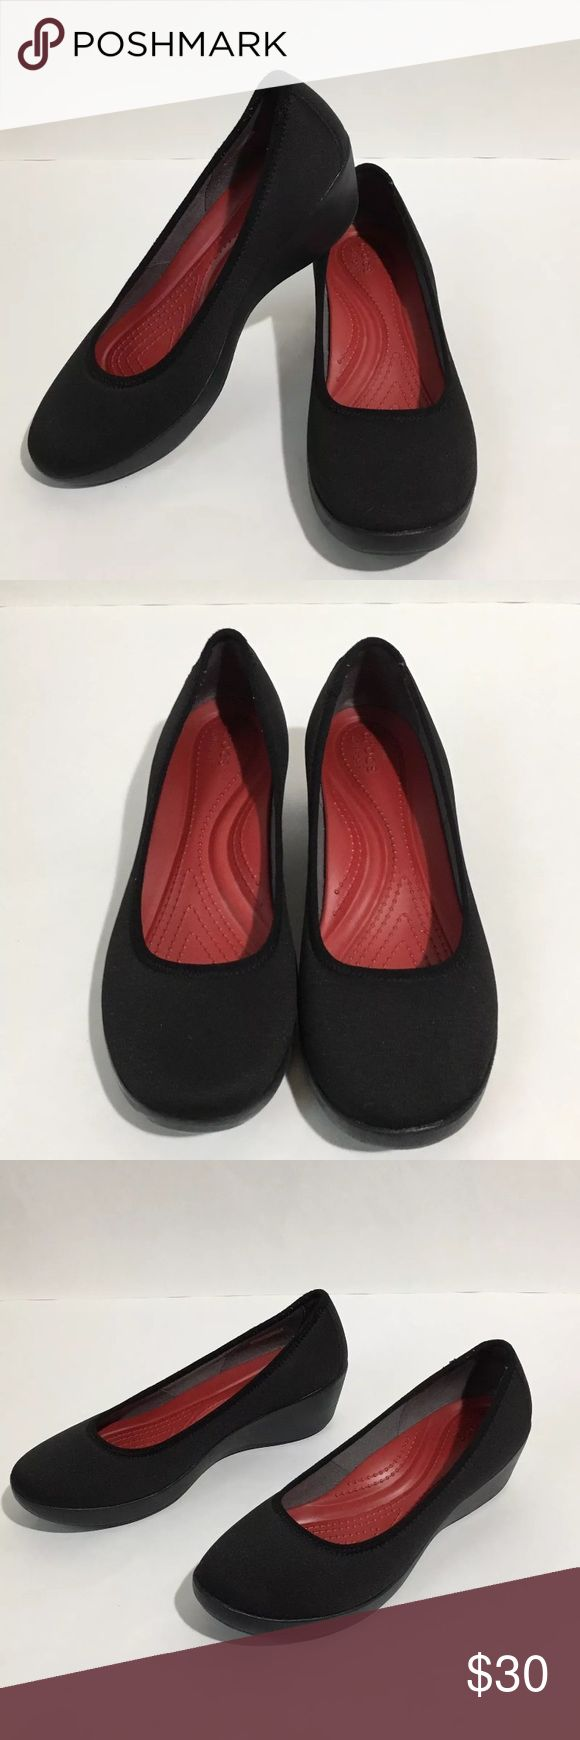 Crocs Busy Day Black Ballet Wedges Dual Comfort 9 Women's Crocs Busy Day Dual Comfort black ballet wedges. Size 9 Retailing for $59.99 Excellent condition no flaws CROCS Shoes Flats & Loafers